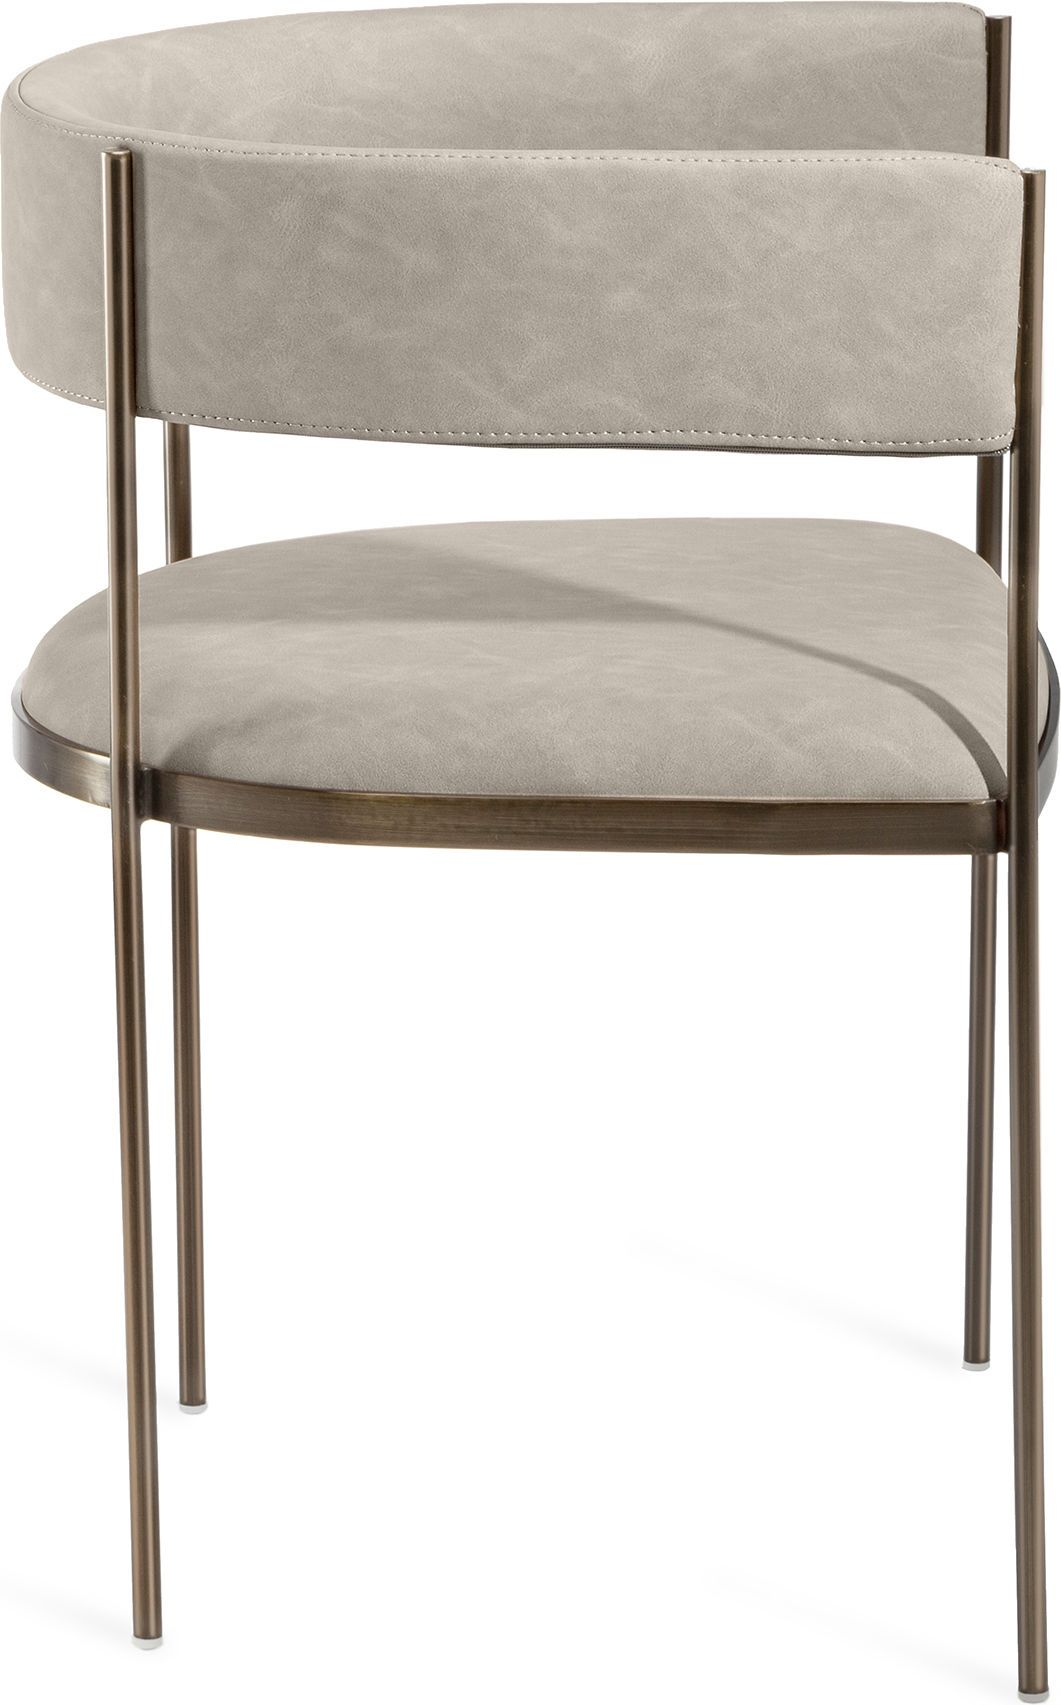 Ryland Dining Chair Finish Distressed Taupe Antique Bronze